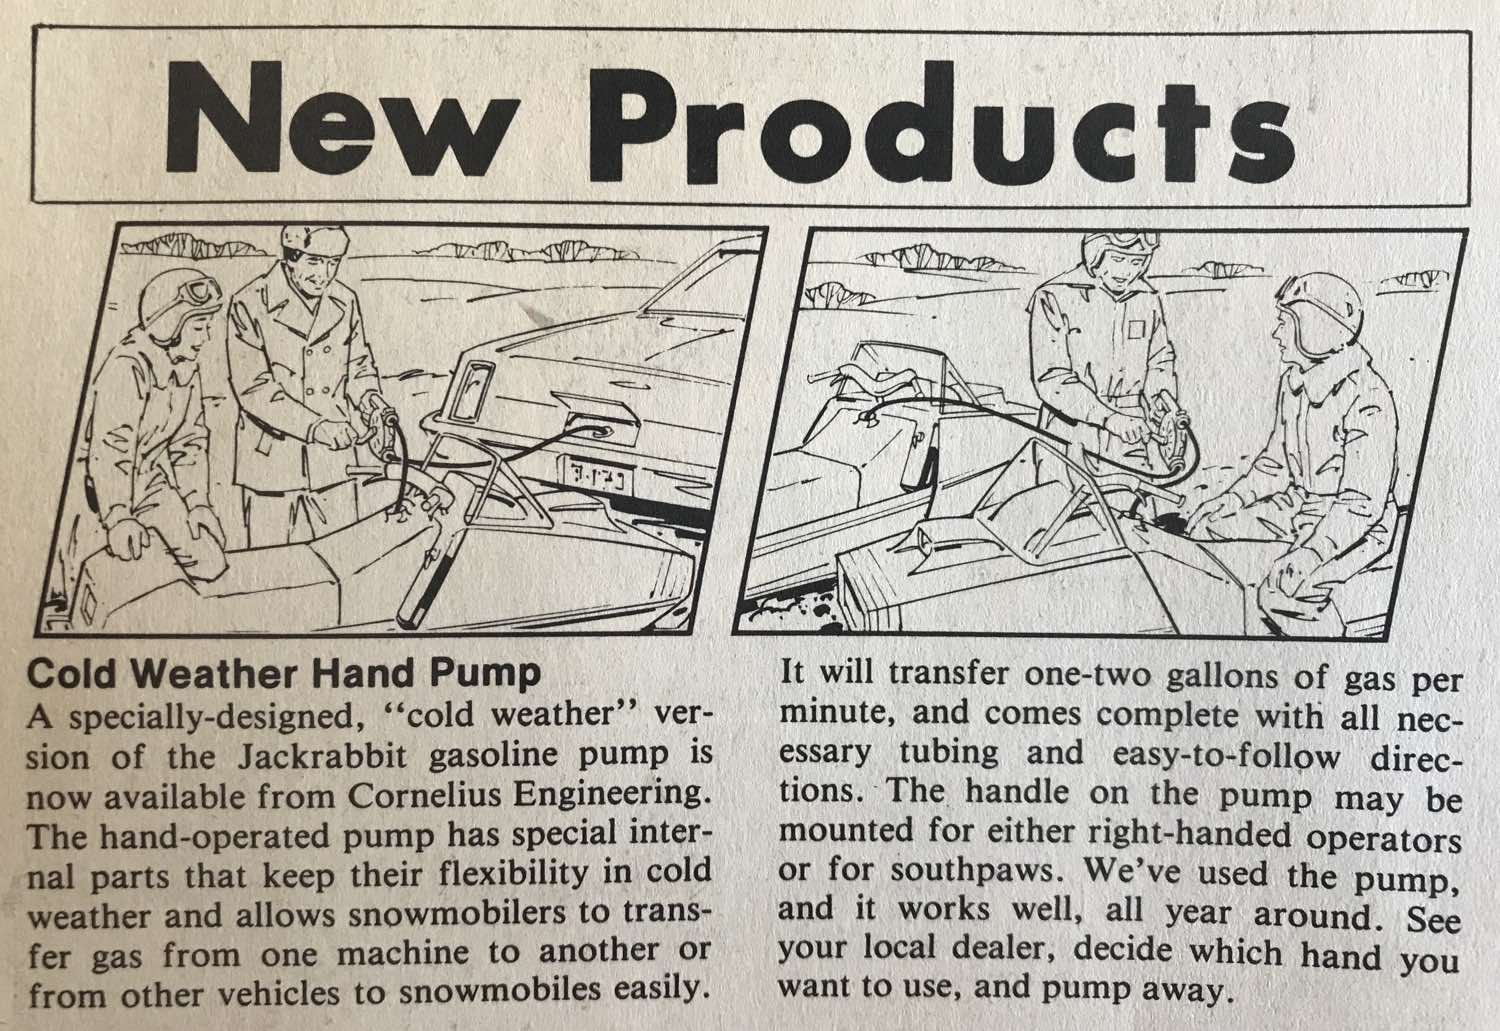 Cold weather hand pump for...snowmobiles?